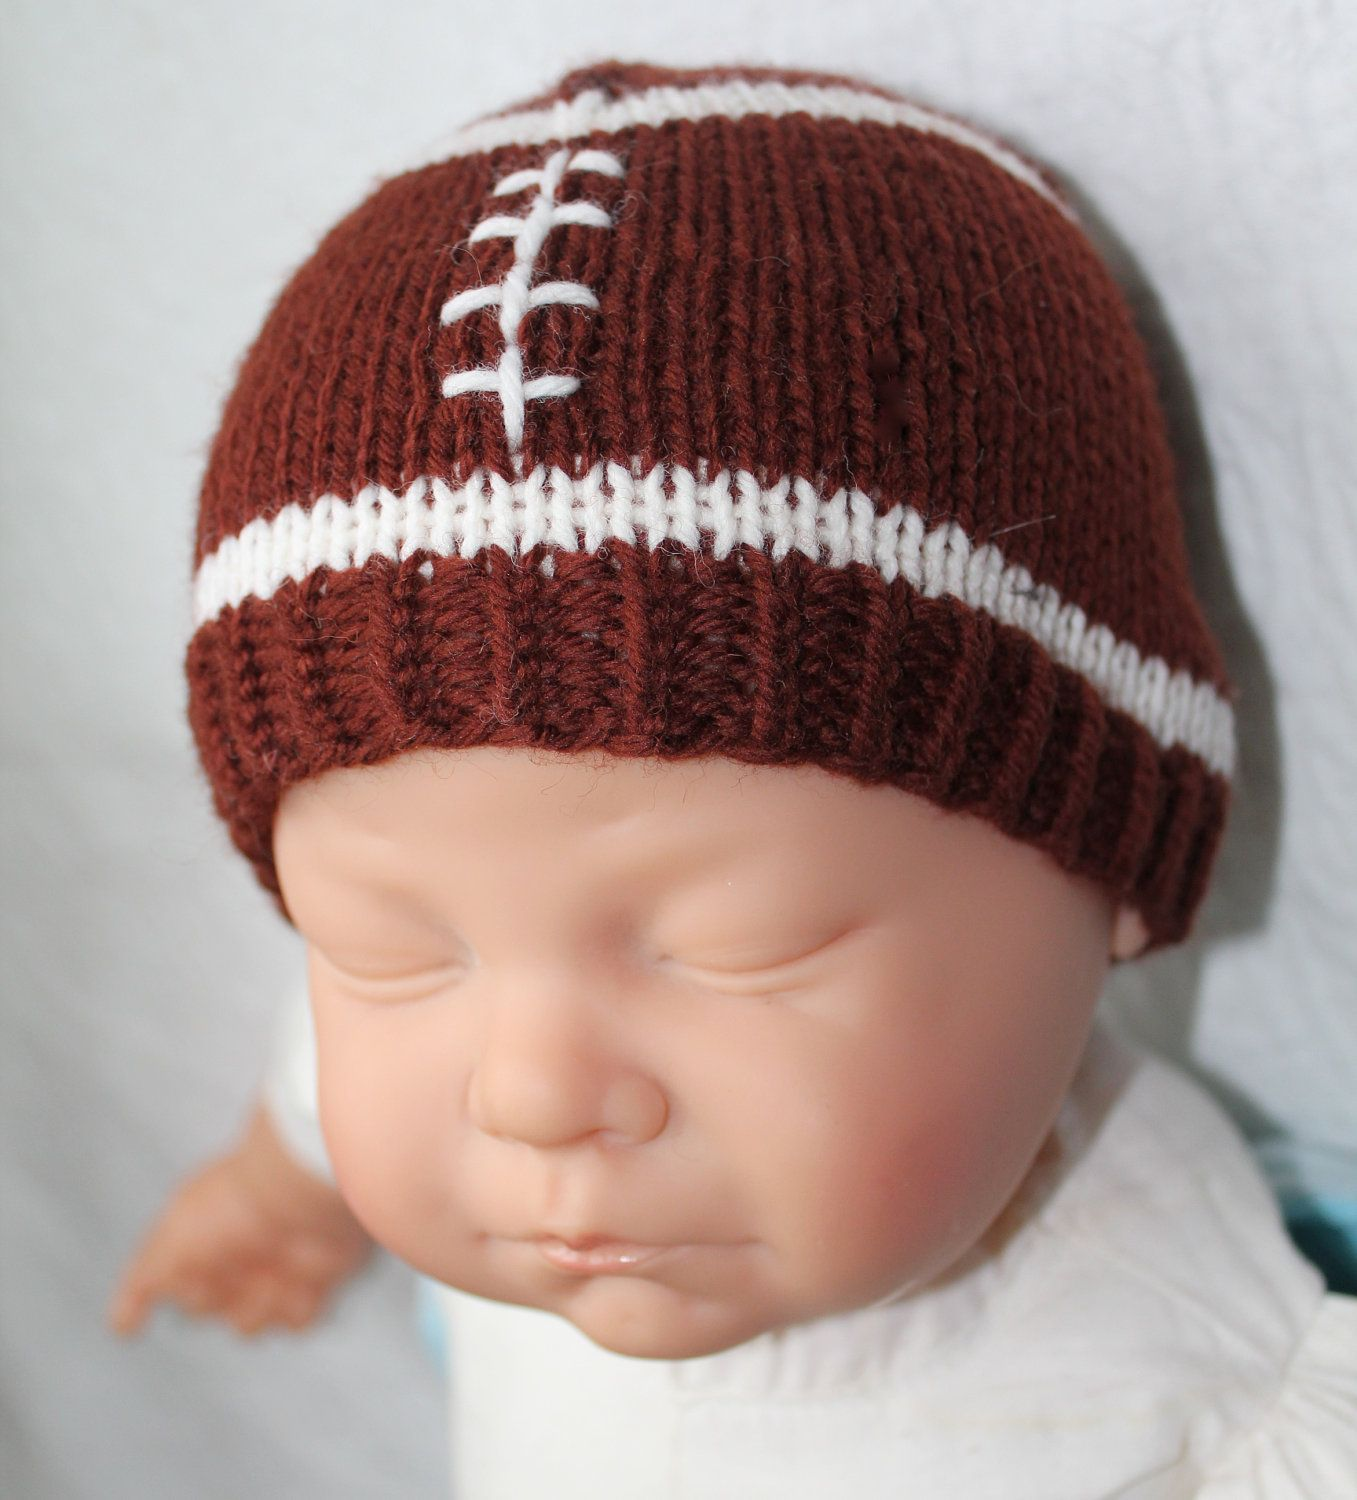 Pattern football baby hat knitting pattern size 0 to 3 and 6 to pattern football baby hat knitting pattern size 0 to 3 and 6 to 12 months bankloansurffo Choice Image